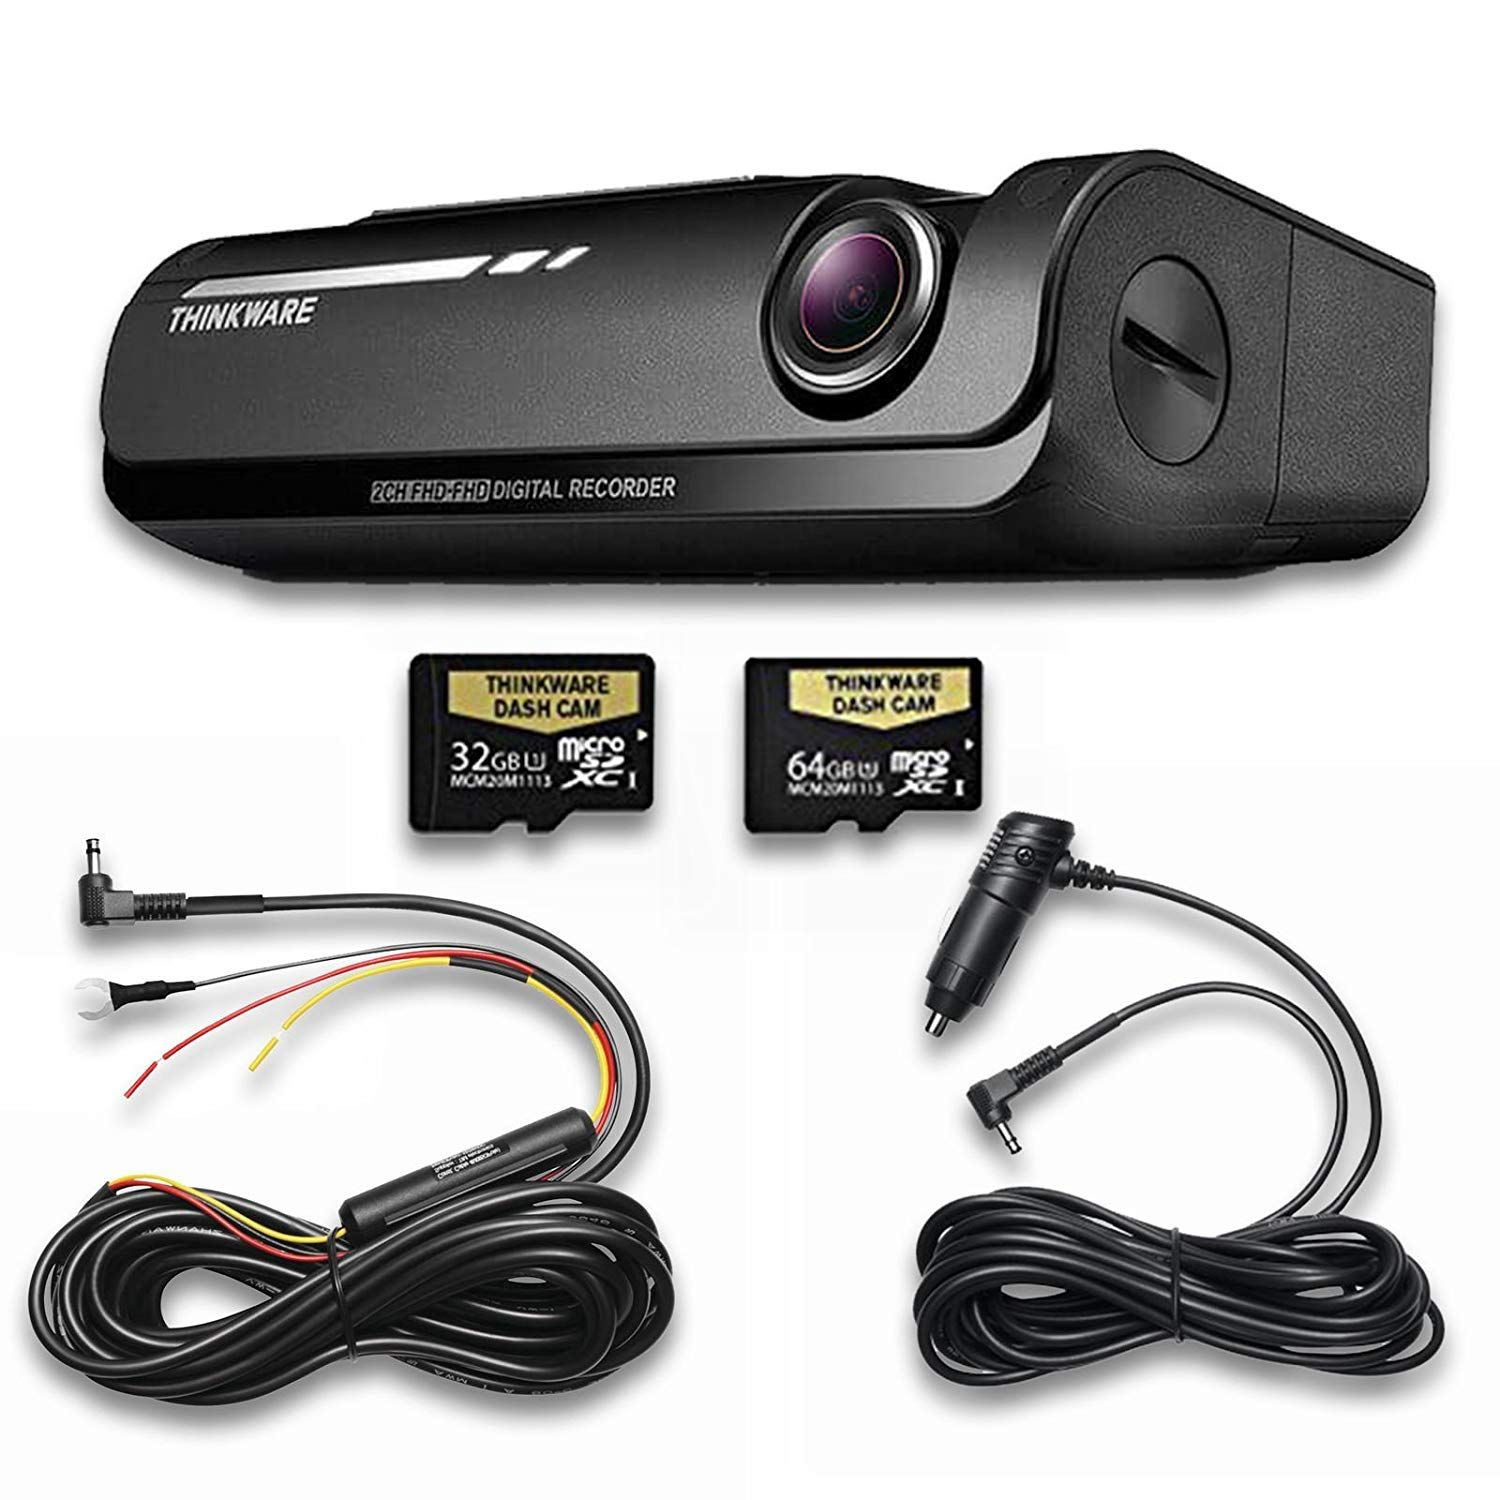 Amazon.com: Thinkware F770 1080P HD WiFi Dash Camera with Rearview on 3 wire regulator, 3 wire fan, 3 wire motor, 3 wire sensor, 3 wire switch, 3 wire light, 3 wire alternator, 3 wire black, 3 wire module, 3 wire wiring, 3 wire power, 3 wire antenna, 3 wire lead, 3 wire wheels, 3 wire solenoid, 3 wire cable, 3 wire adapter, 3 wire coil, 3 wire lamp, 3 wire control,